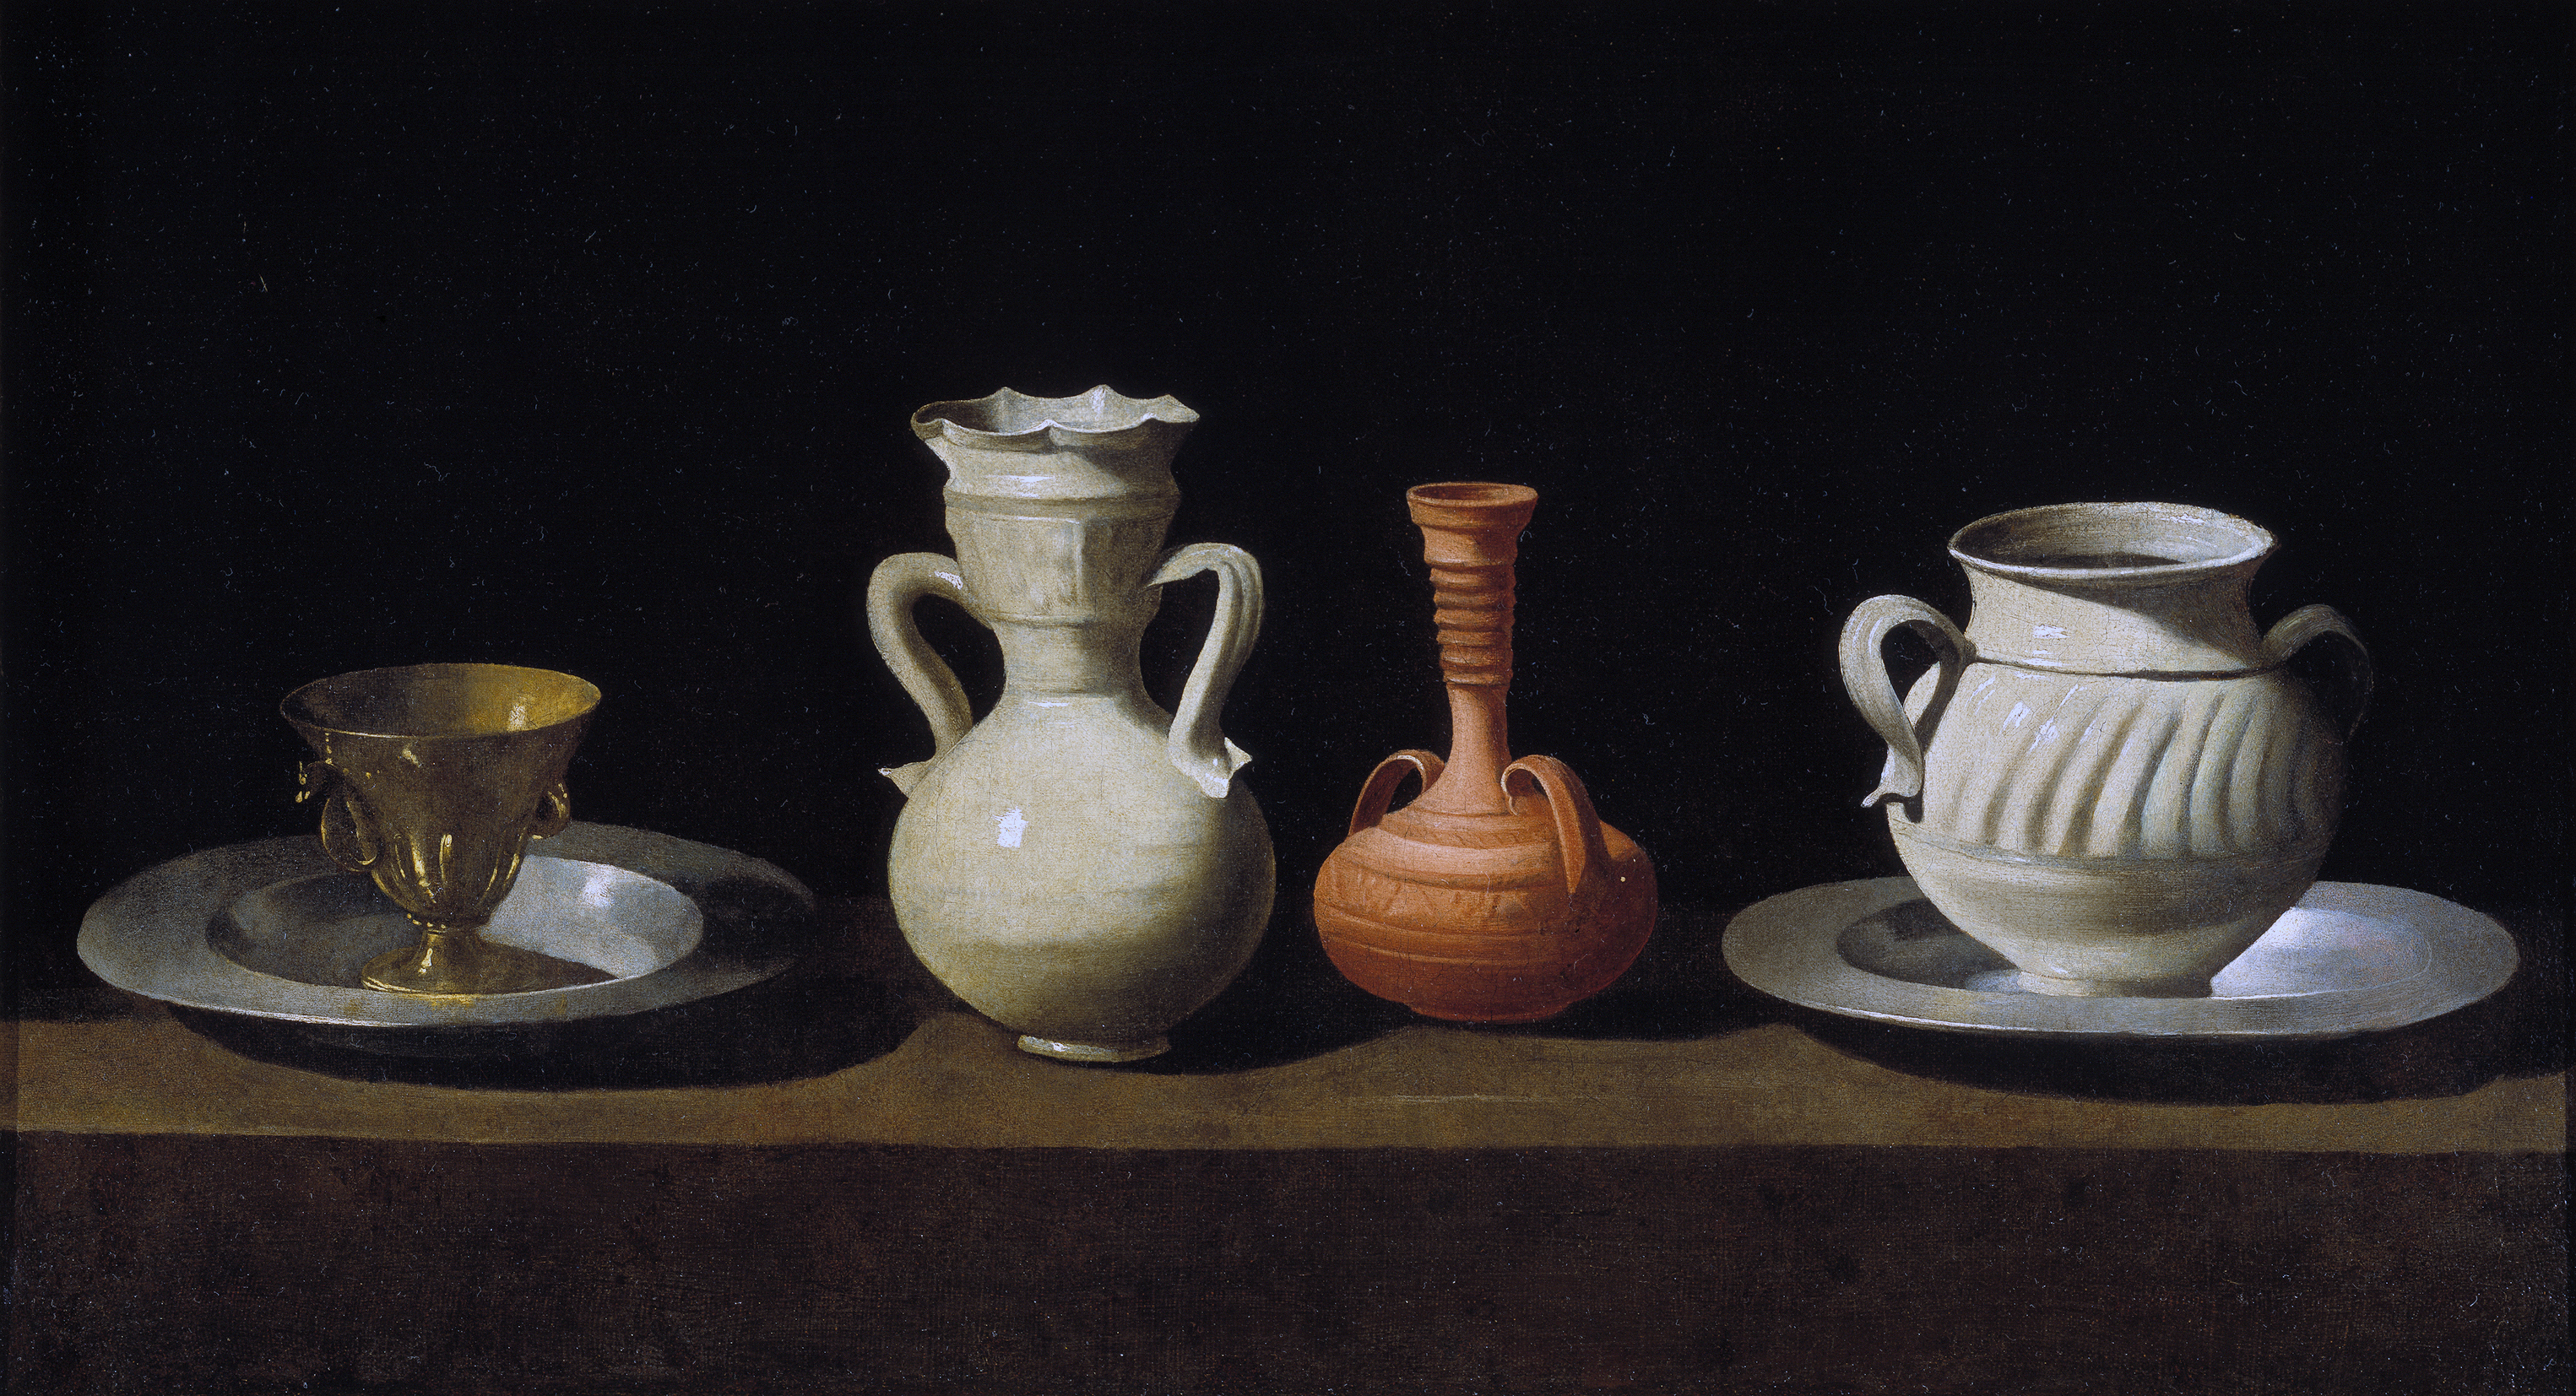 Bodegon de recipientes by Francisco de Zurbaran